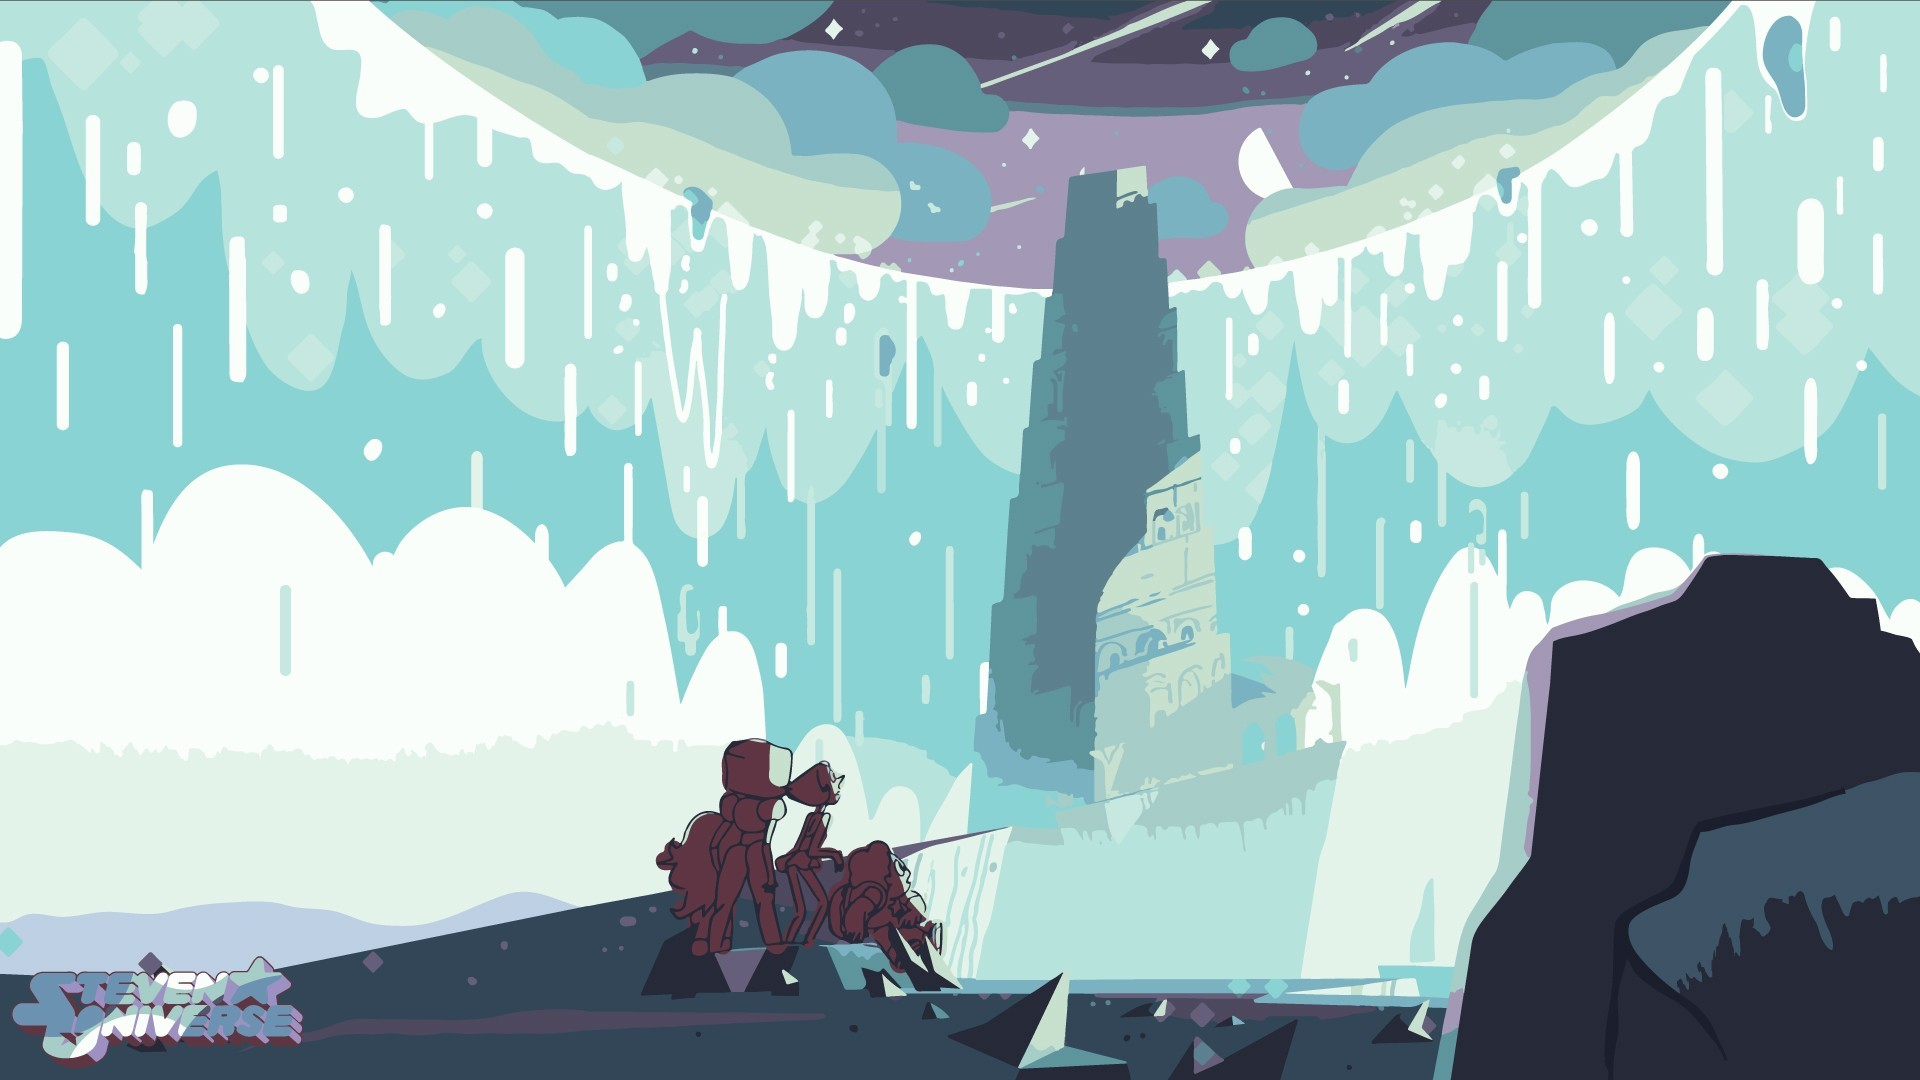 49 Steven Universe Backgrounds Space Download Free Beautiful